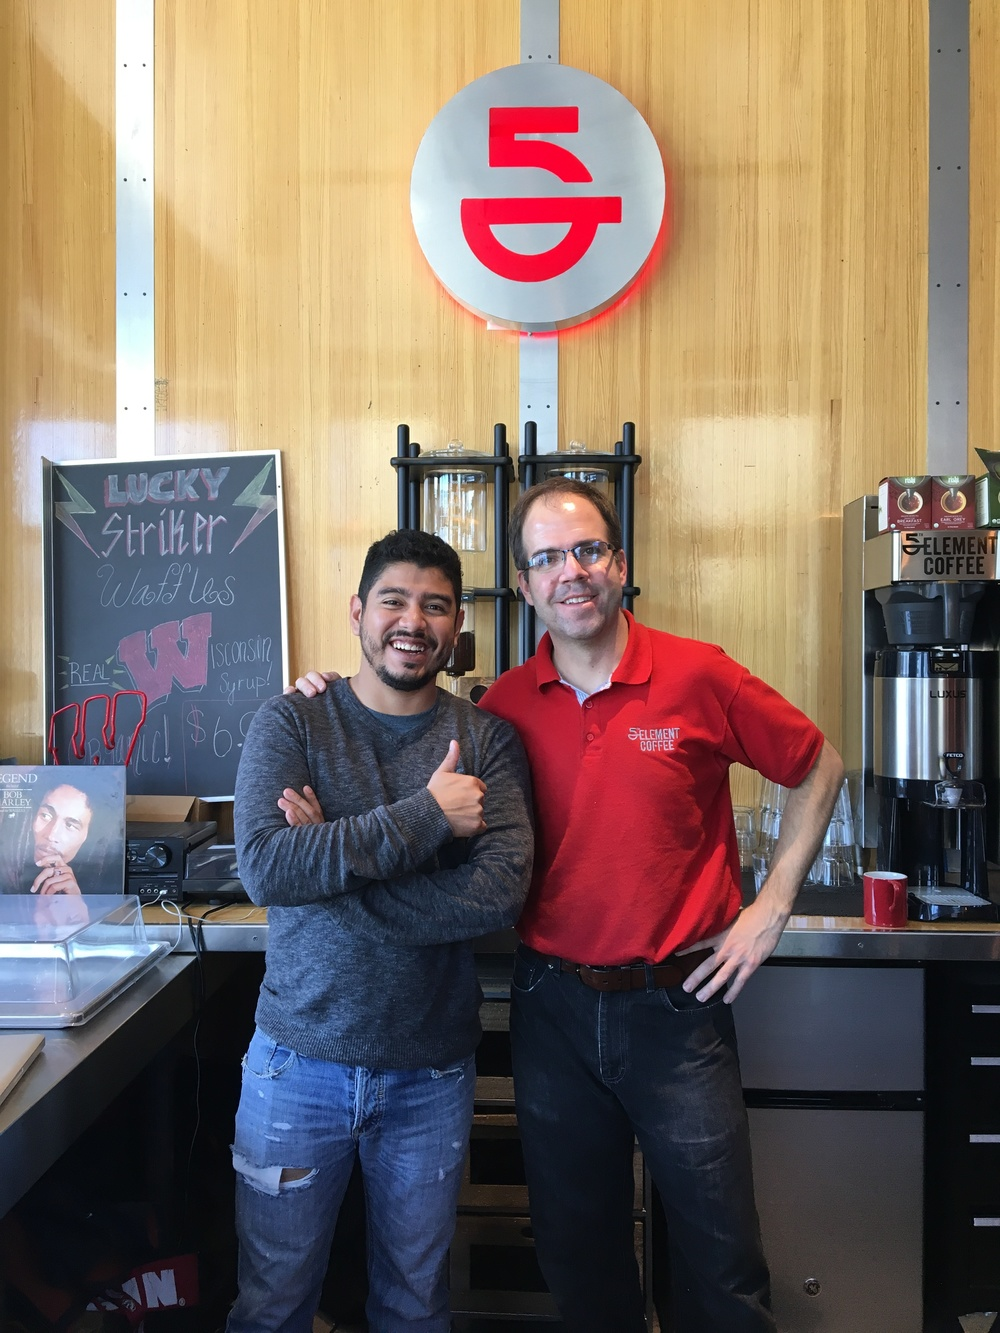 Alejandro Mendez and Todd Allbaugh - Co-owners of 5th Element Coffee                                                                                            Photo by Epicurean Chronicles